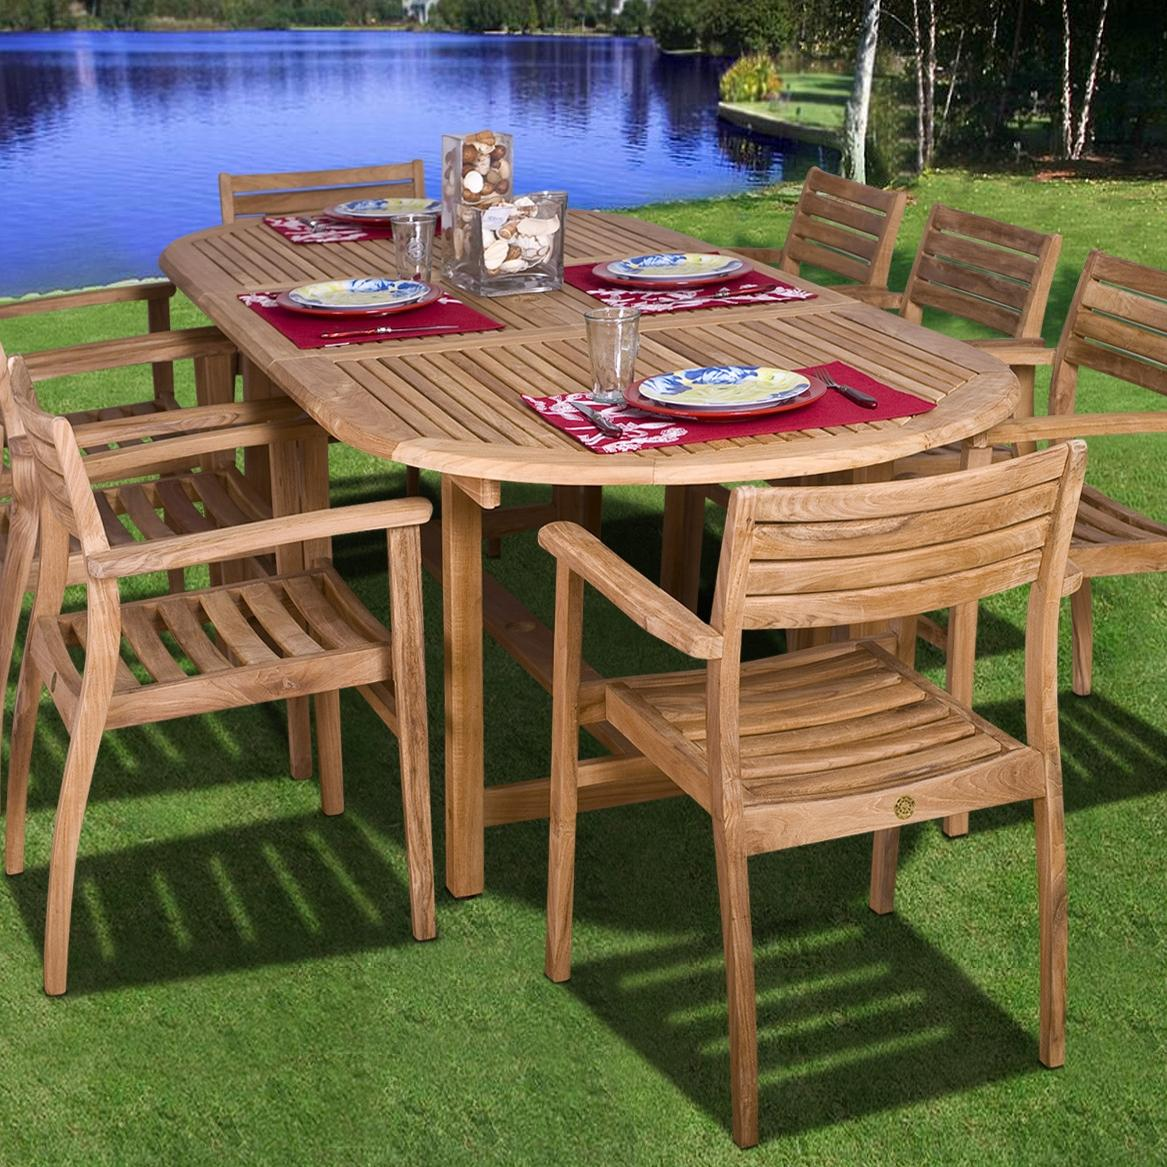 Amazonia Teak Coventry 8-person Teak Patio Dining Set With Extension Table And Stacking Chairs